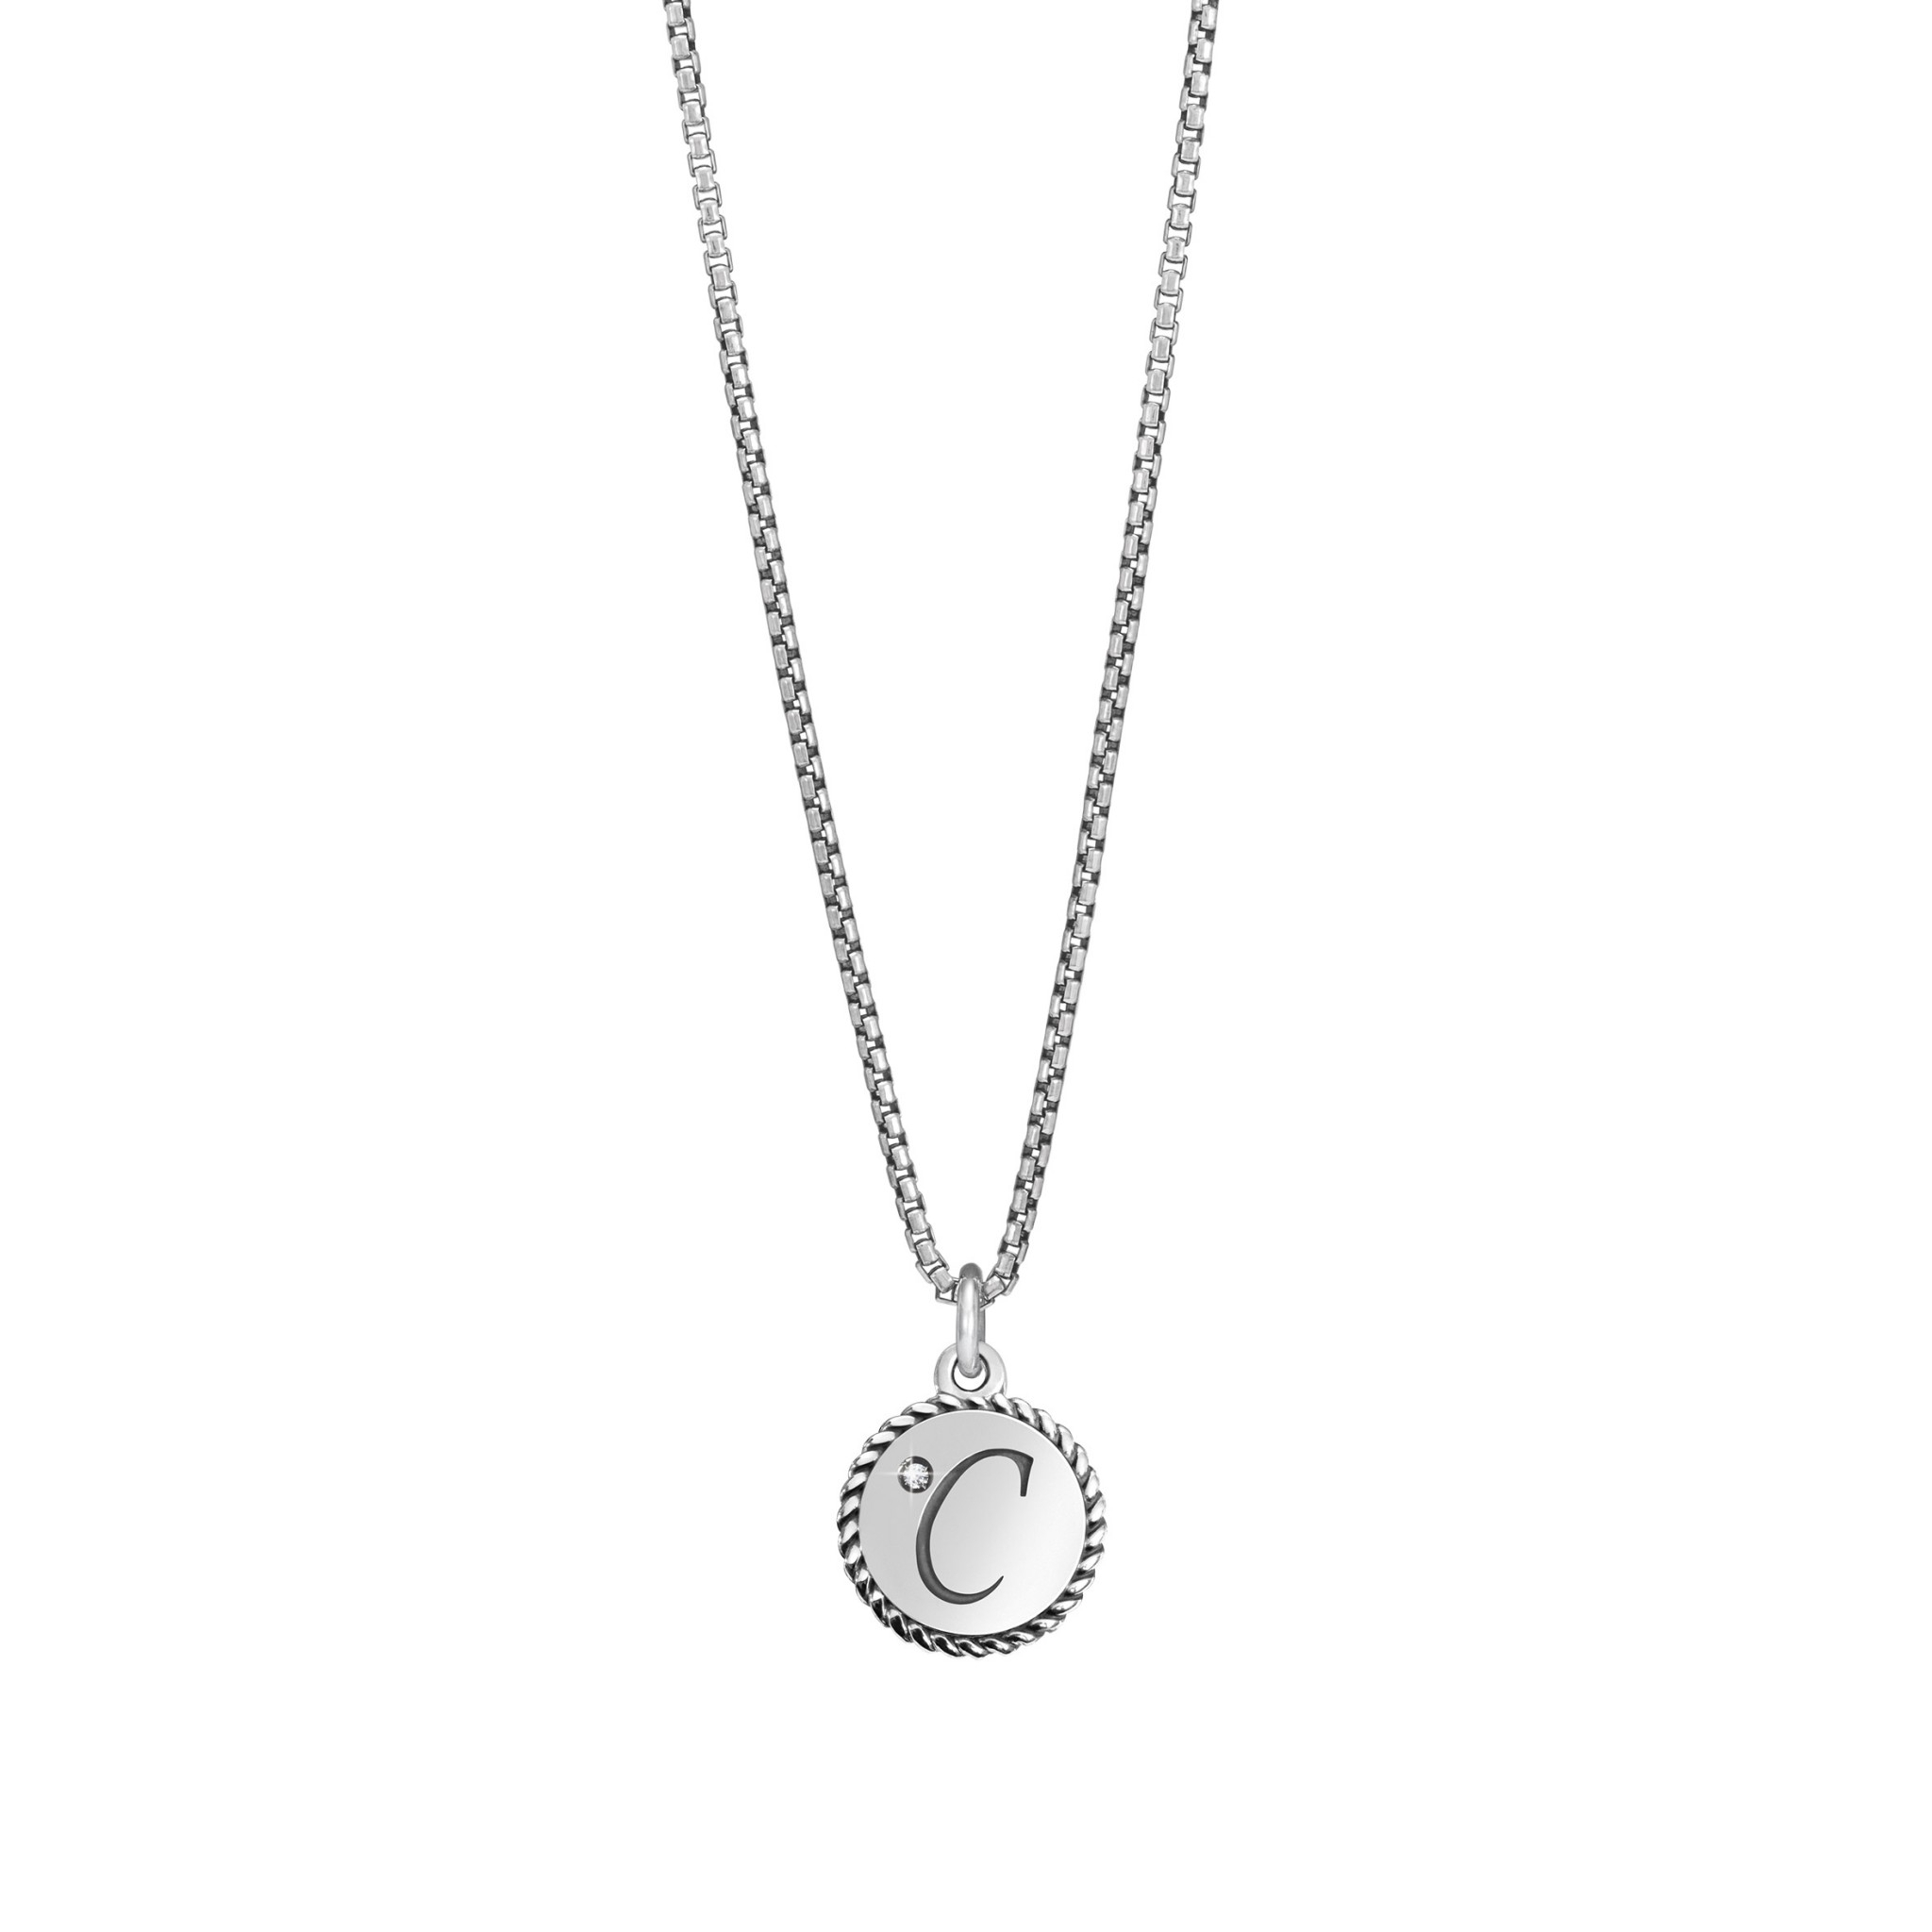 Necklace With Letter C In Silver And Gemstone Intended For Most Recent Letter S Alphabet Locket Element Necklaces (View 7 of 25)